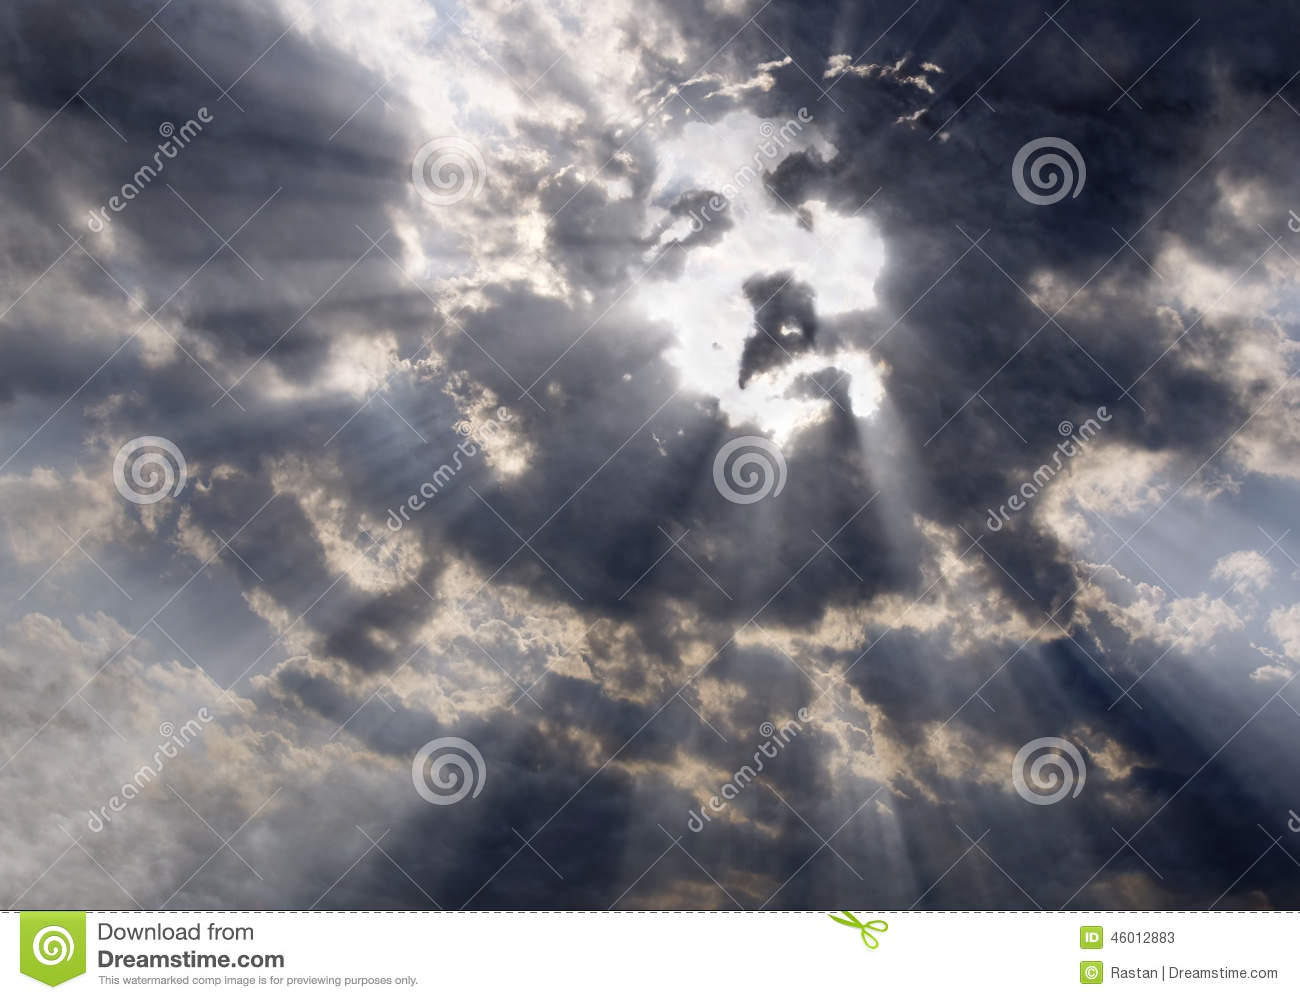 The Face Of Christ In The Sky Stock Image - Image of heaven, face: 46012883